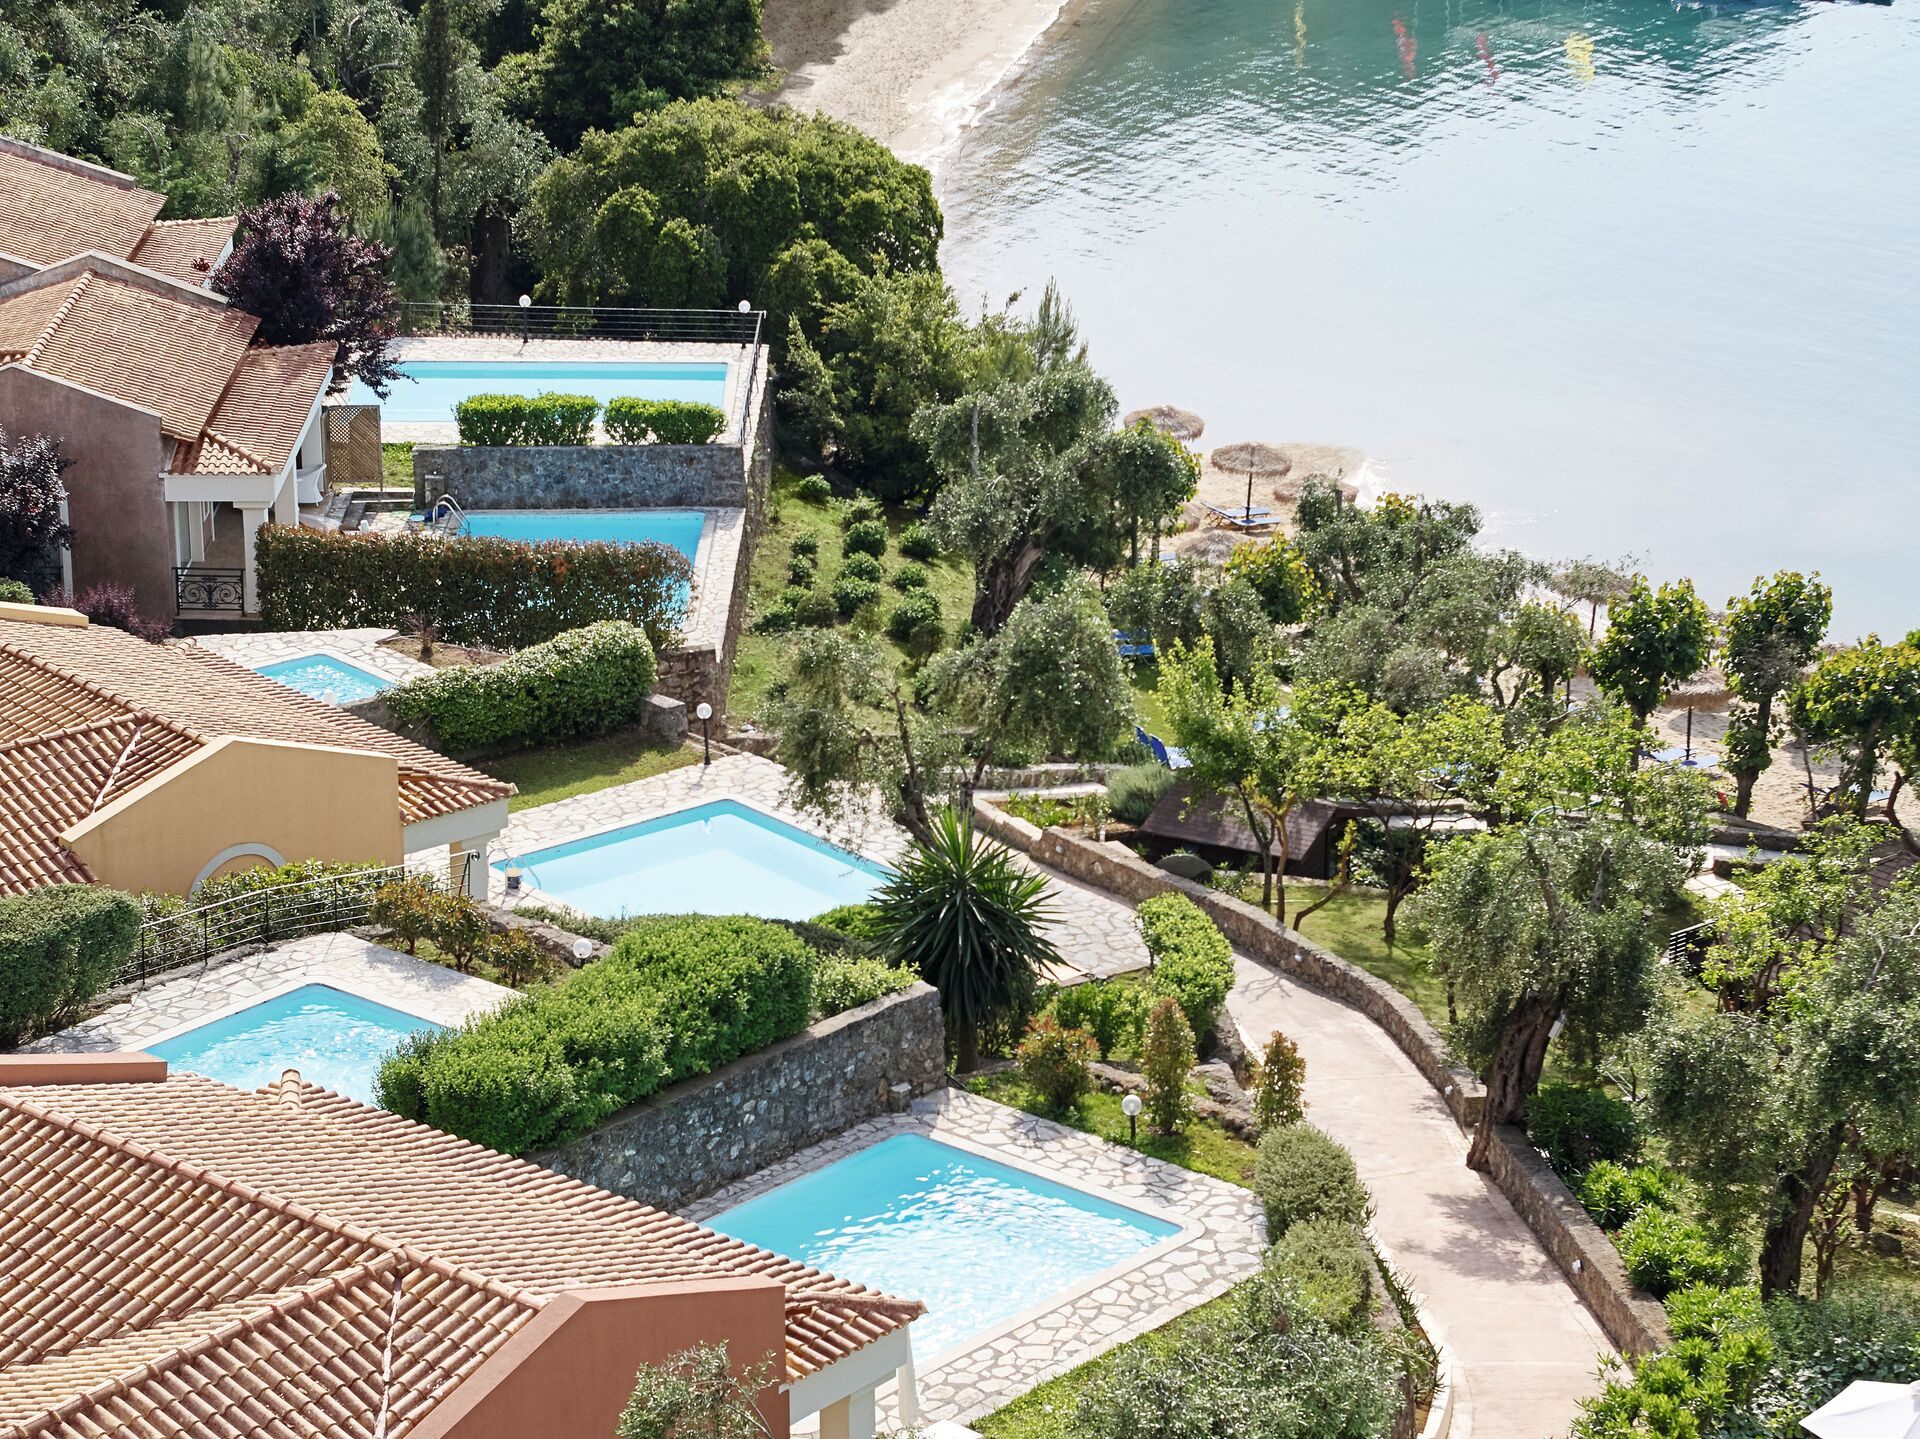 https://cms.satur.sk/data/imgs/tour_image/orig/08-palazzina-villa-with-2-private-pools_72dpi-1946650.jpg